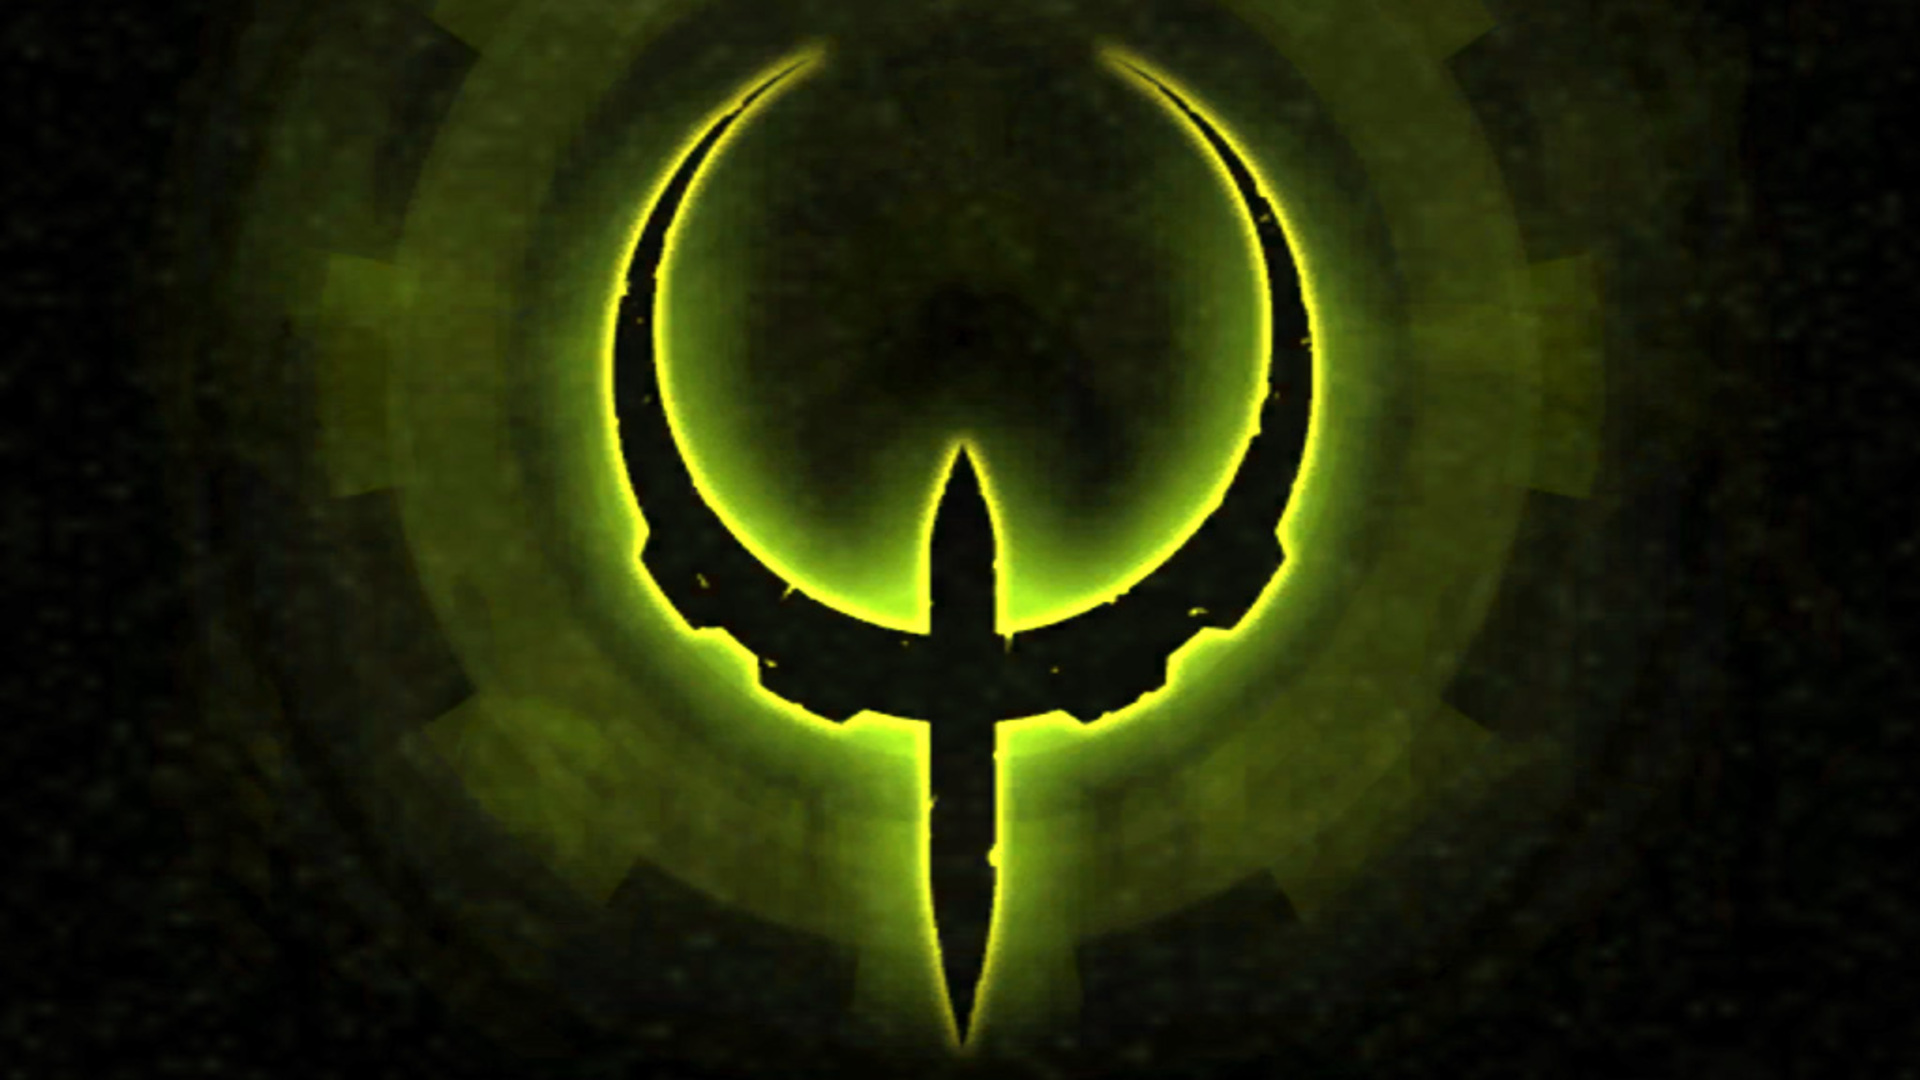 XMWallpaperscom    wallpaper games quake 000 1920x1080